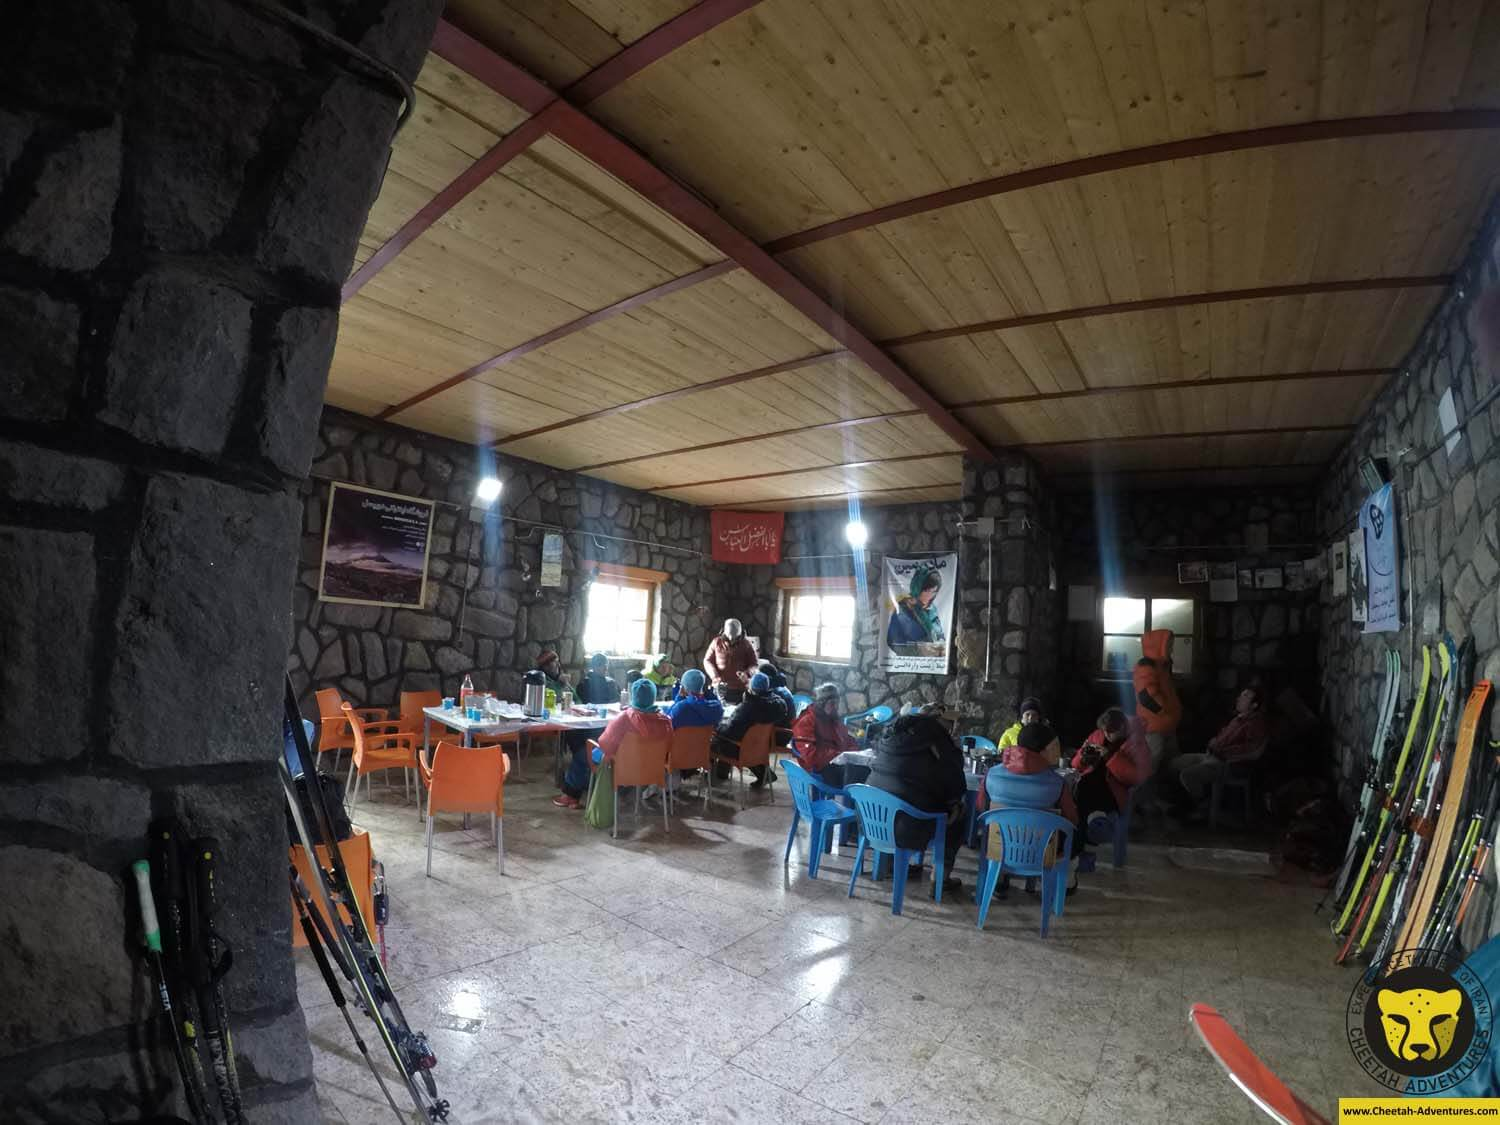 5-4 Dining room at Bargah-e Sevom Hut (4200m), Damavand Ski Touring